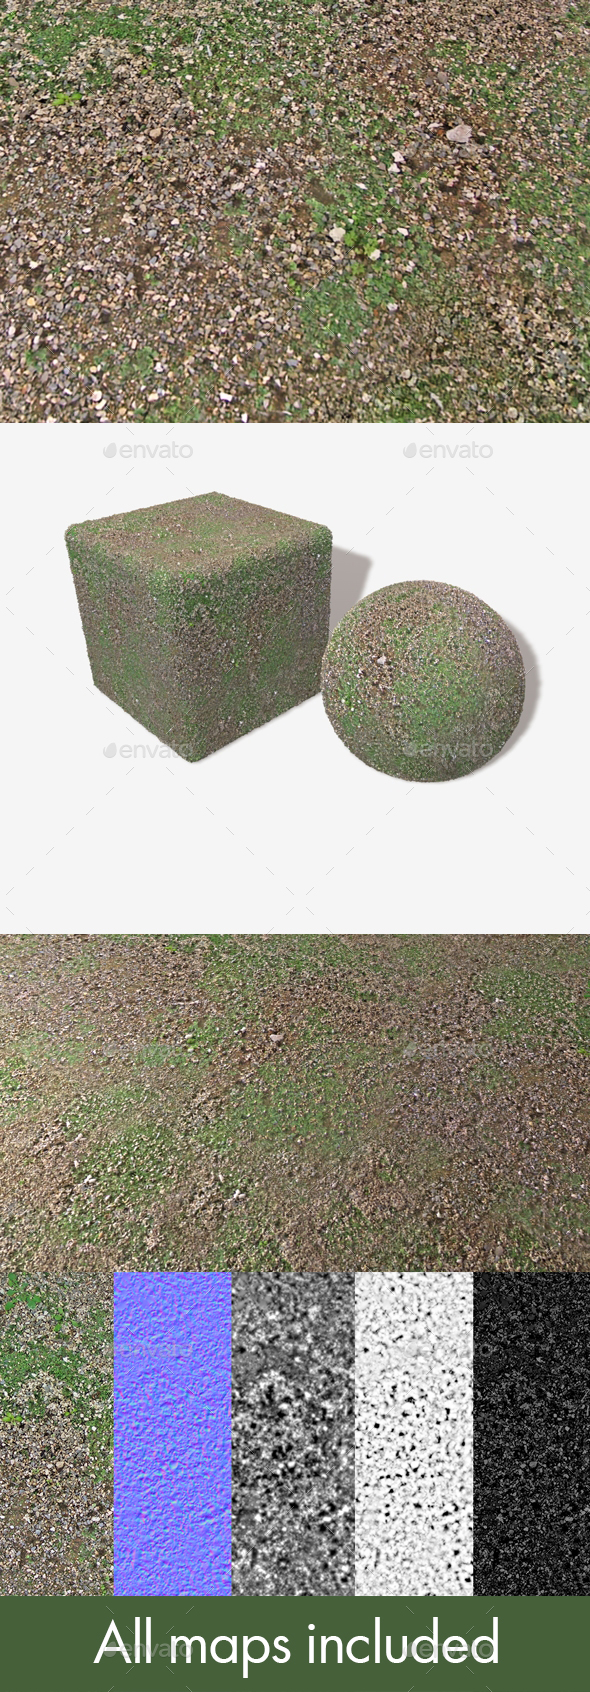 Gravel Weeds Seamless Texture - 3DOcean Item for Sale